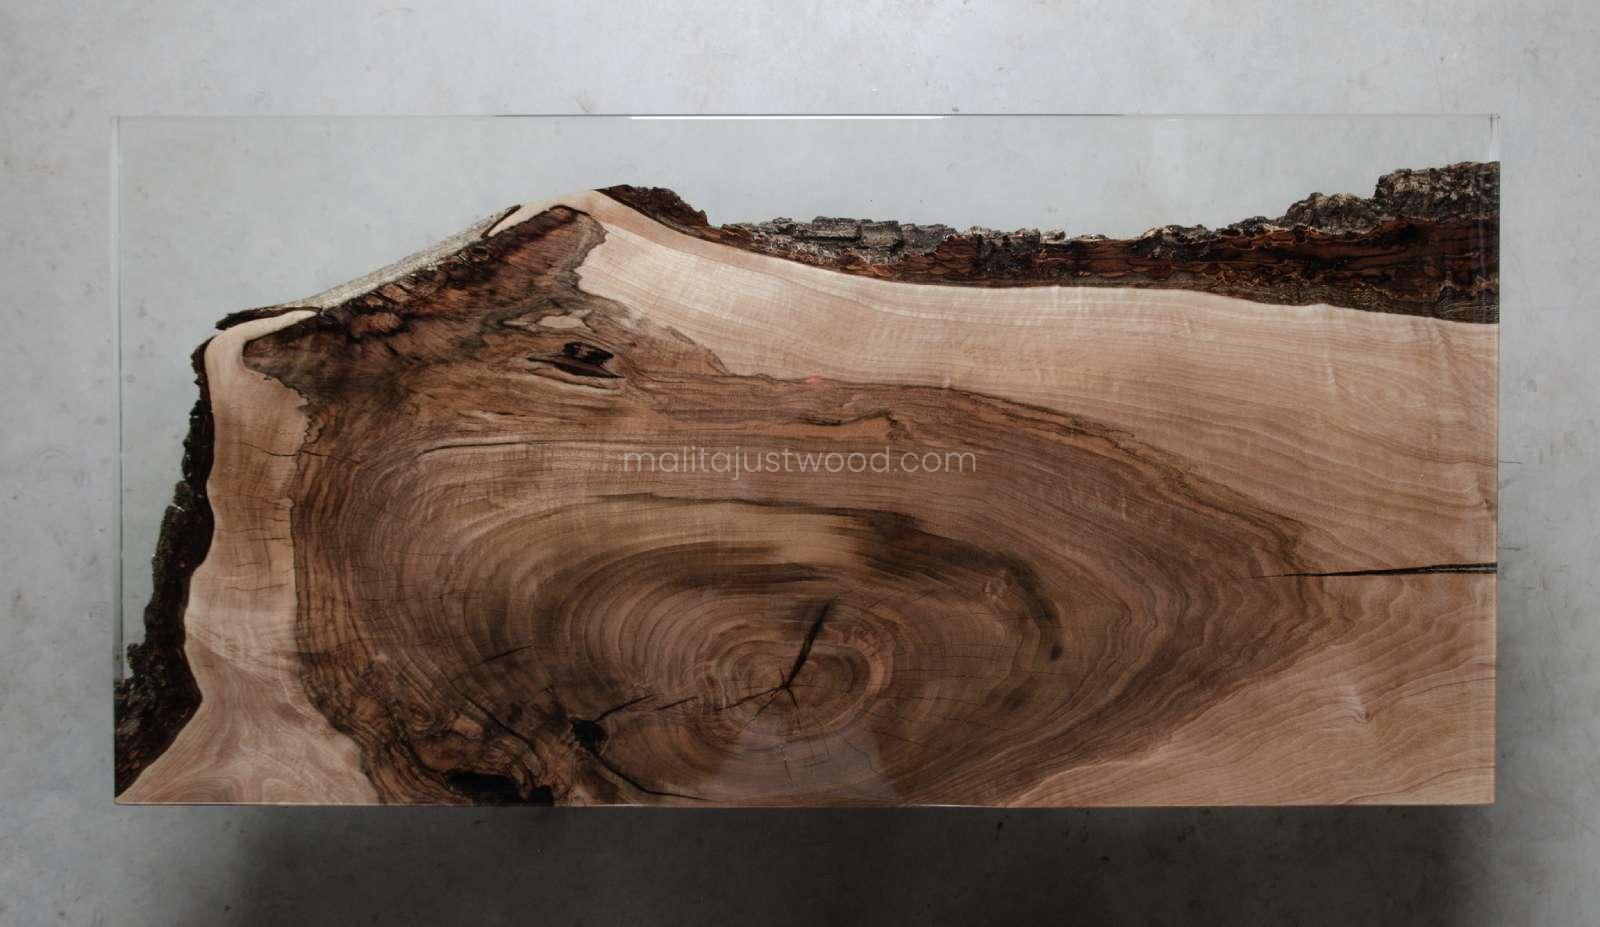 walnut coffee table Sublimis with resin